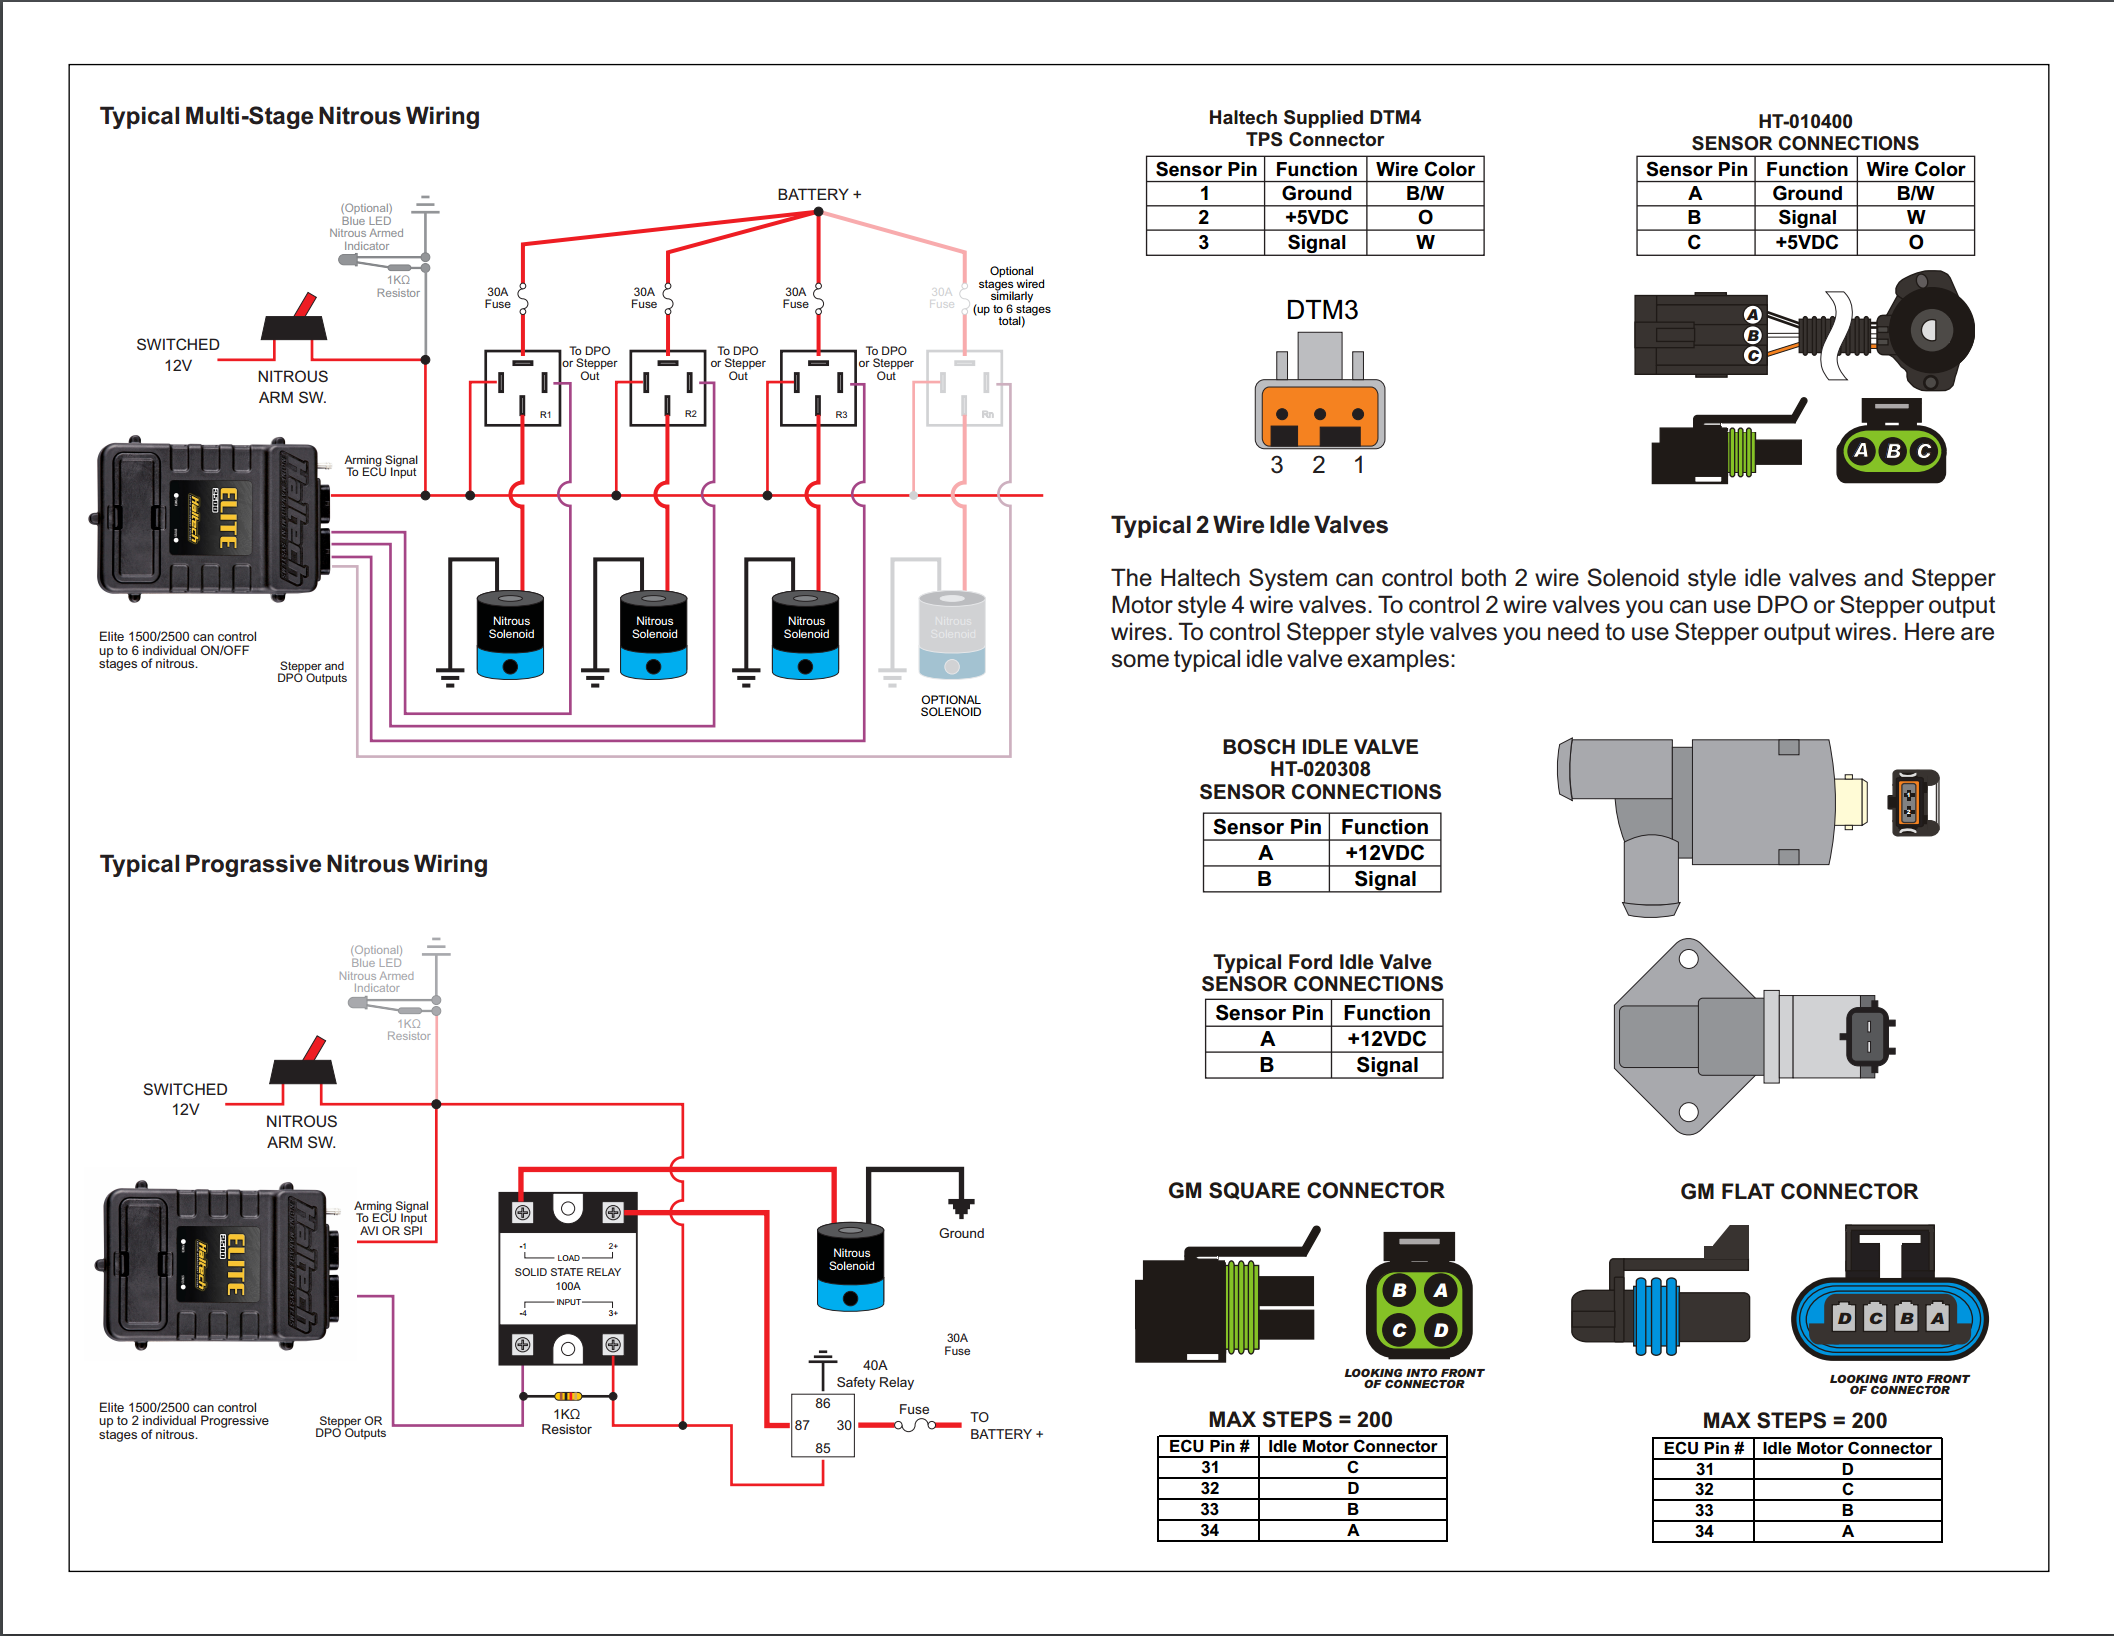 haltech engine management systems harness archives haltech rh haltech com 2G DSM ECU Pinout haltech elite 550 wiring diagram